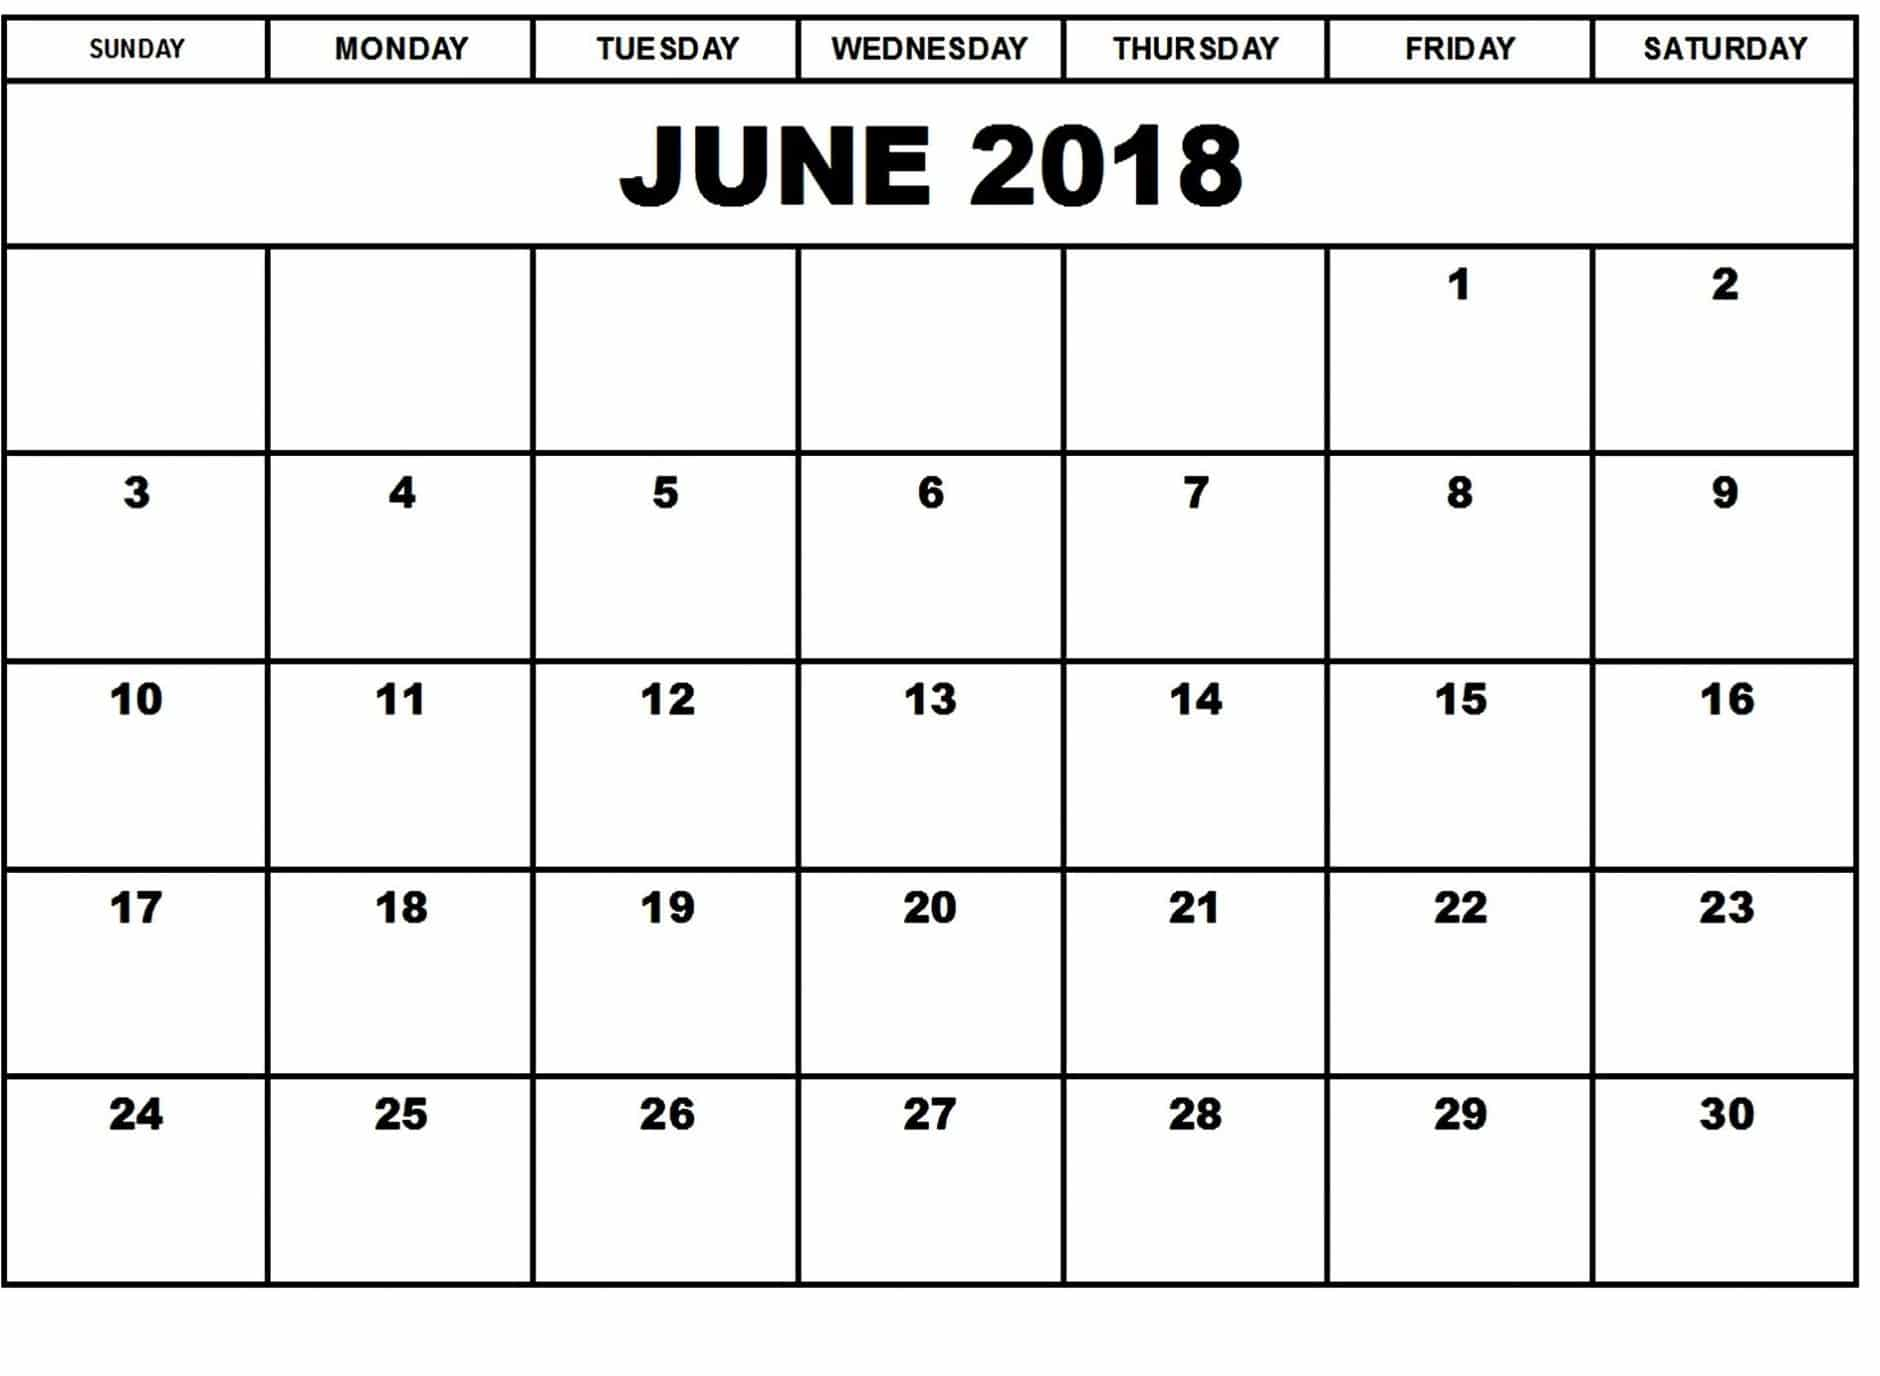 picture about Fun Printable Calendar identify June 2018 Printable Calendar Entertaining Quotation Illustrations or photos High definition Absolutely free